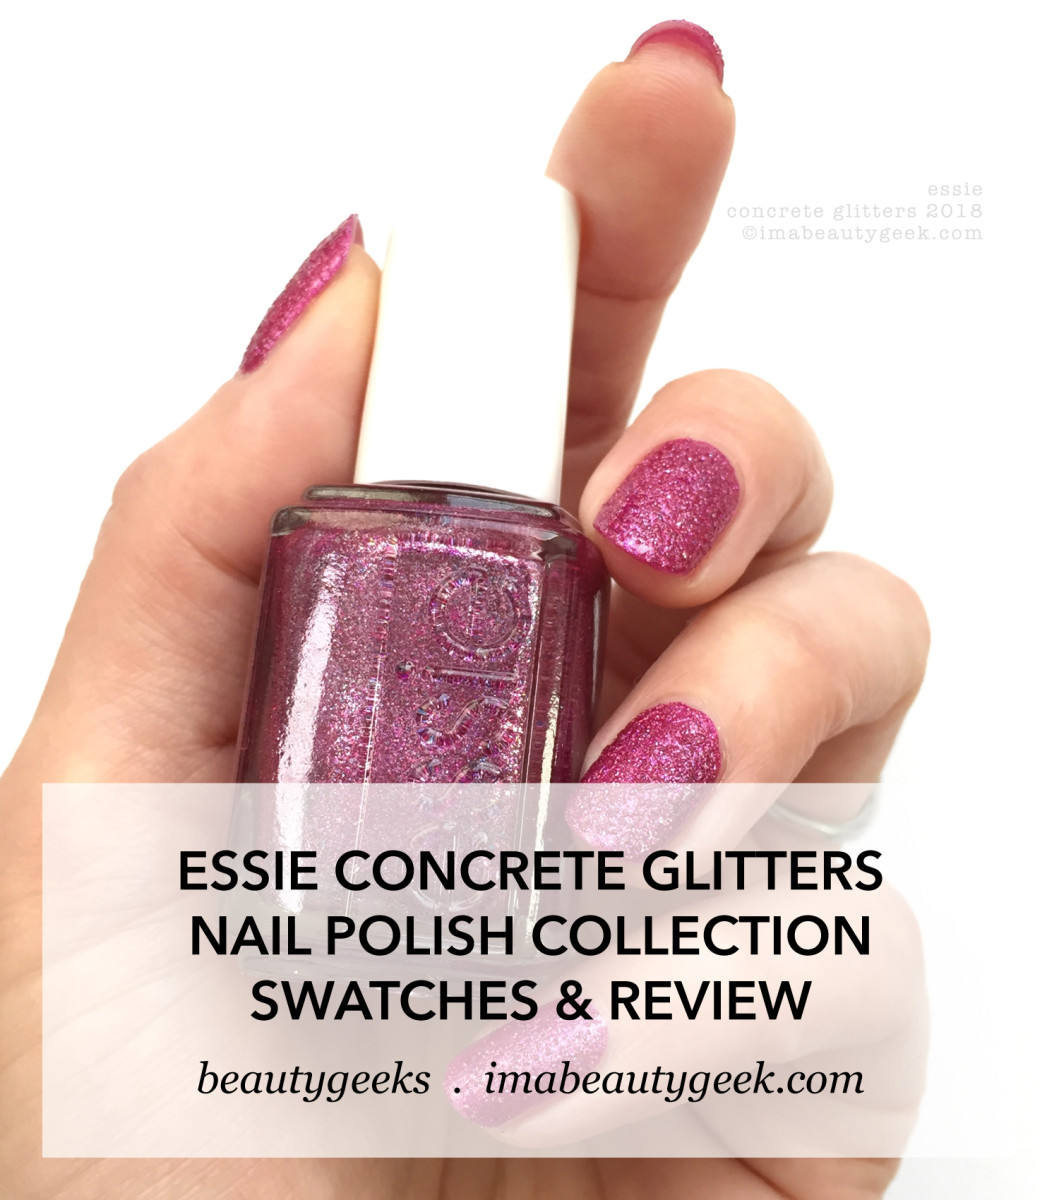 Essie Concrete Glitters Collection Swatches Review 2018